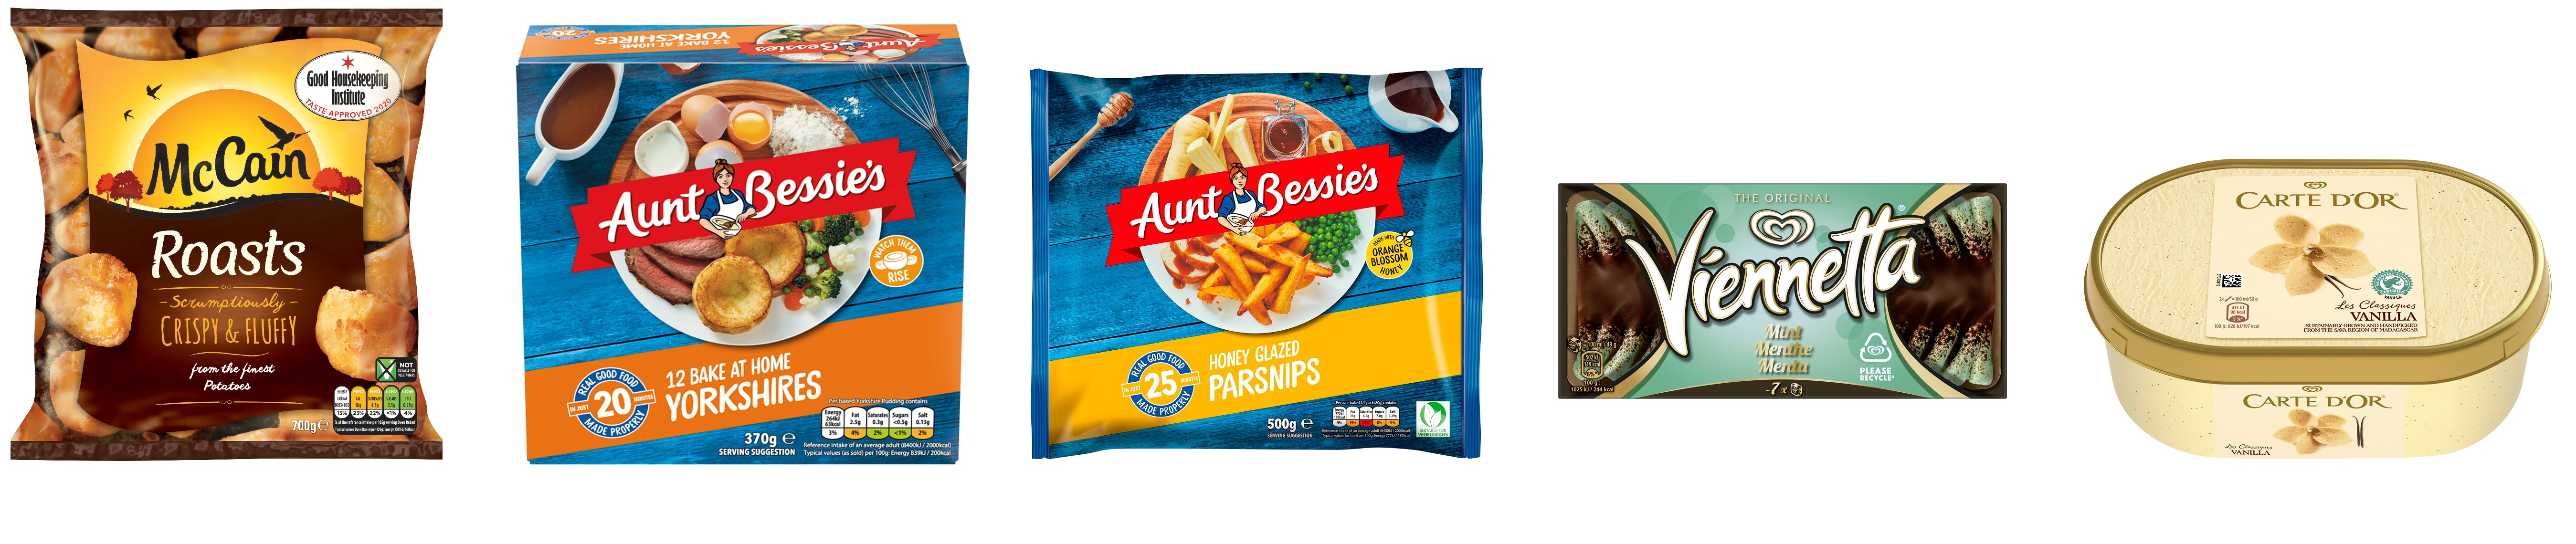 Get roast potatoes, Yorkshire puds, parsnips and two desserts for £5 with The Co-op's freezer filler deal